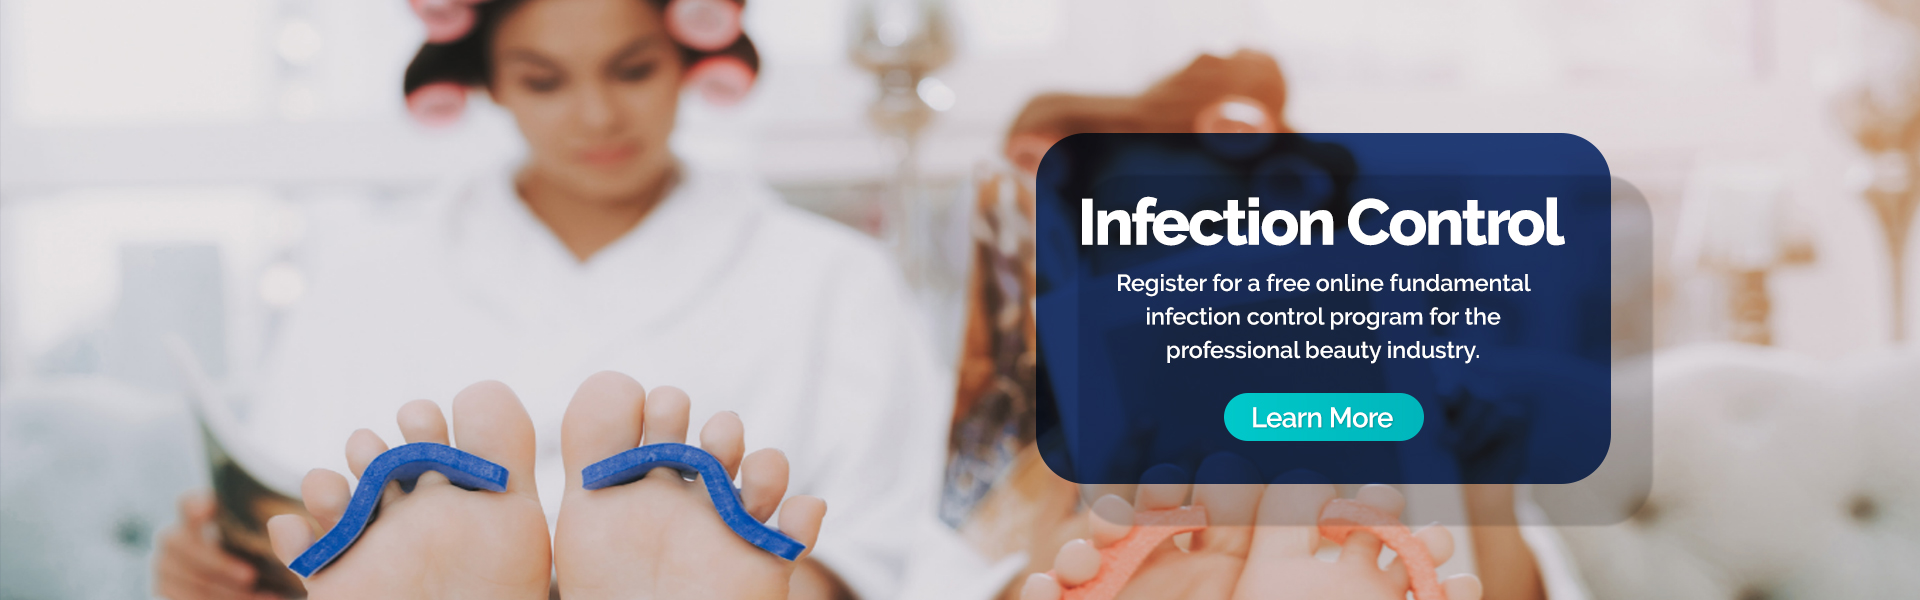 free online fundamental infection control program for the professional beauty industry